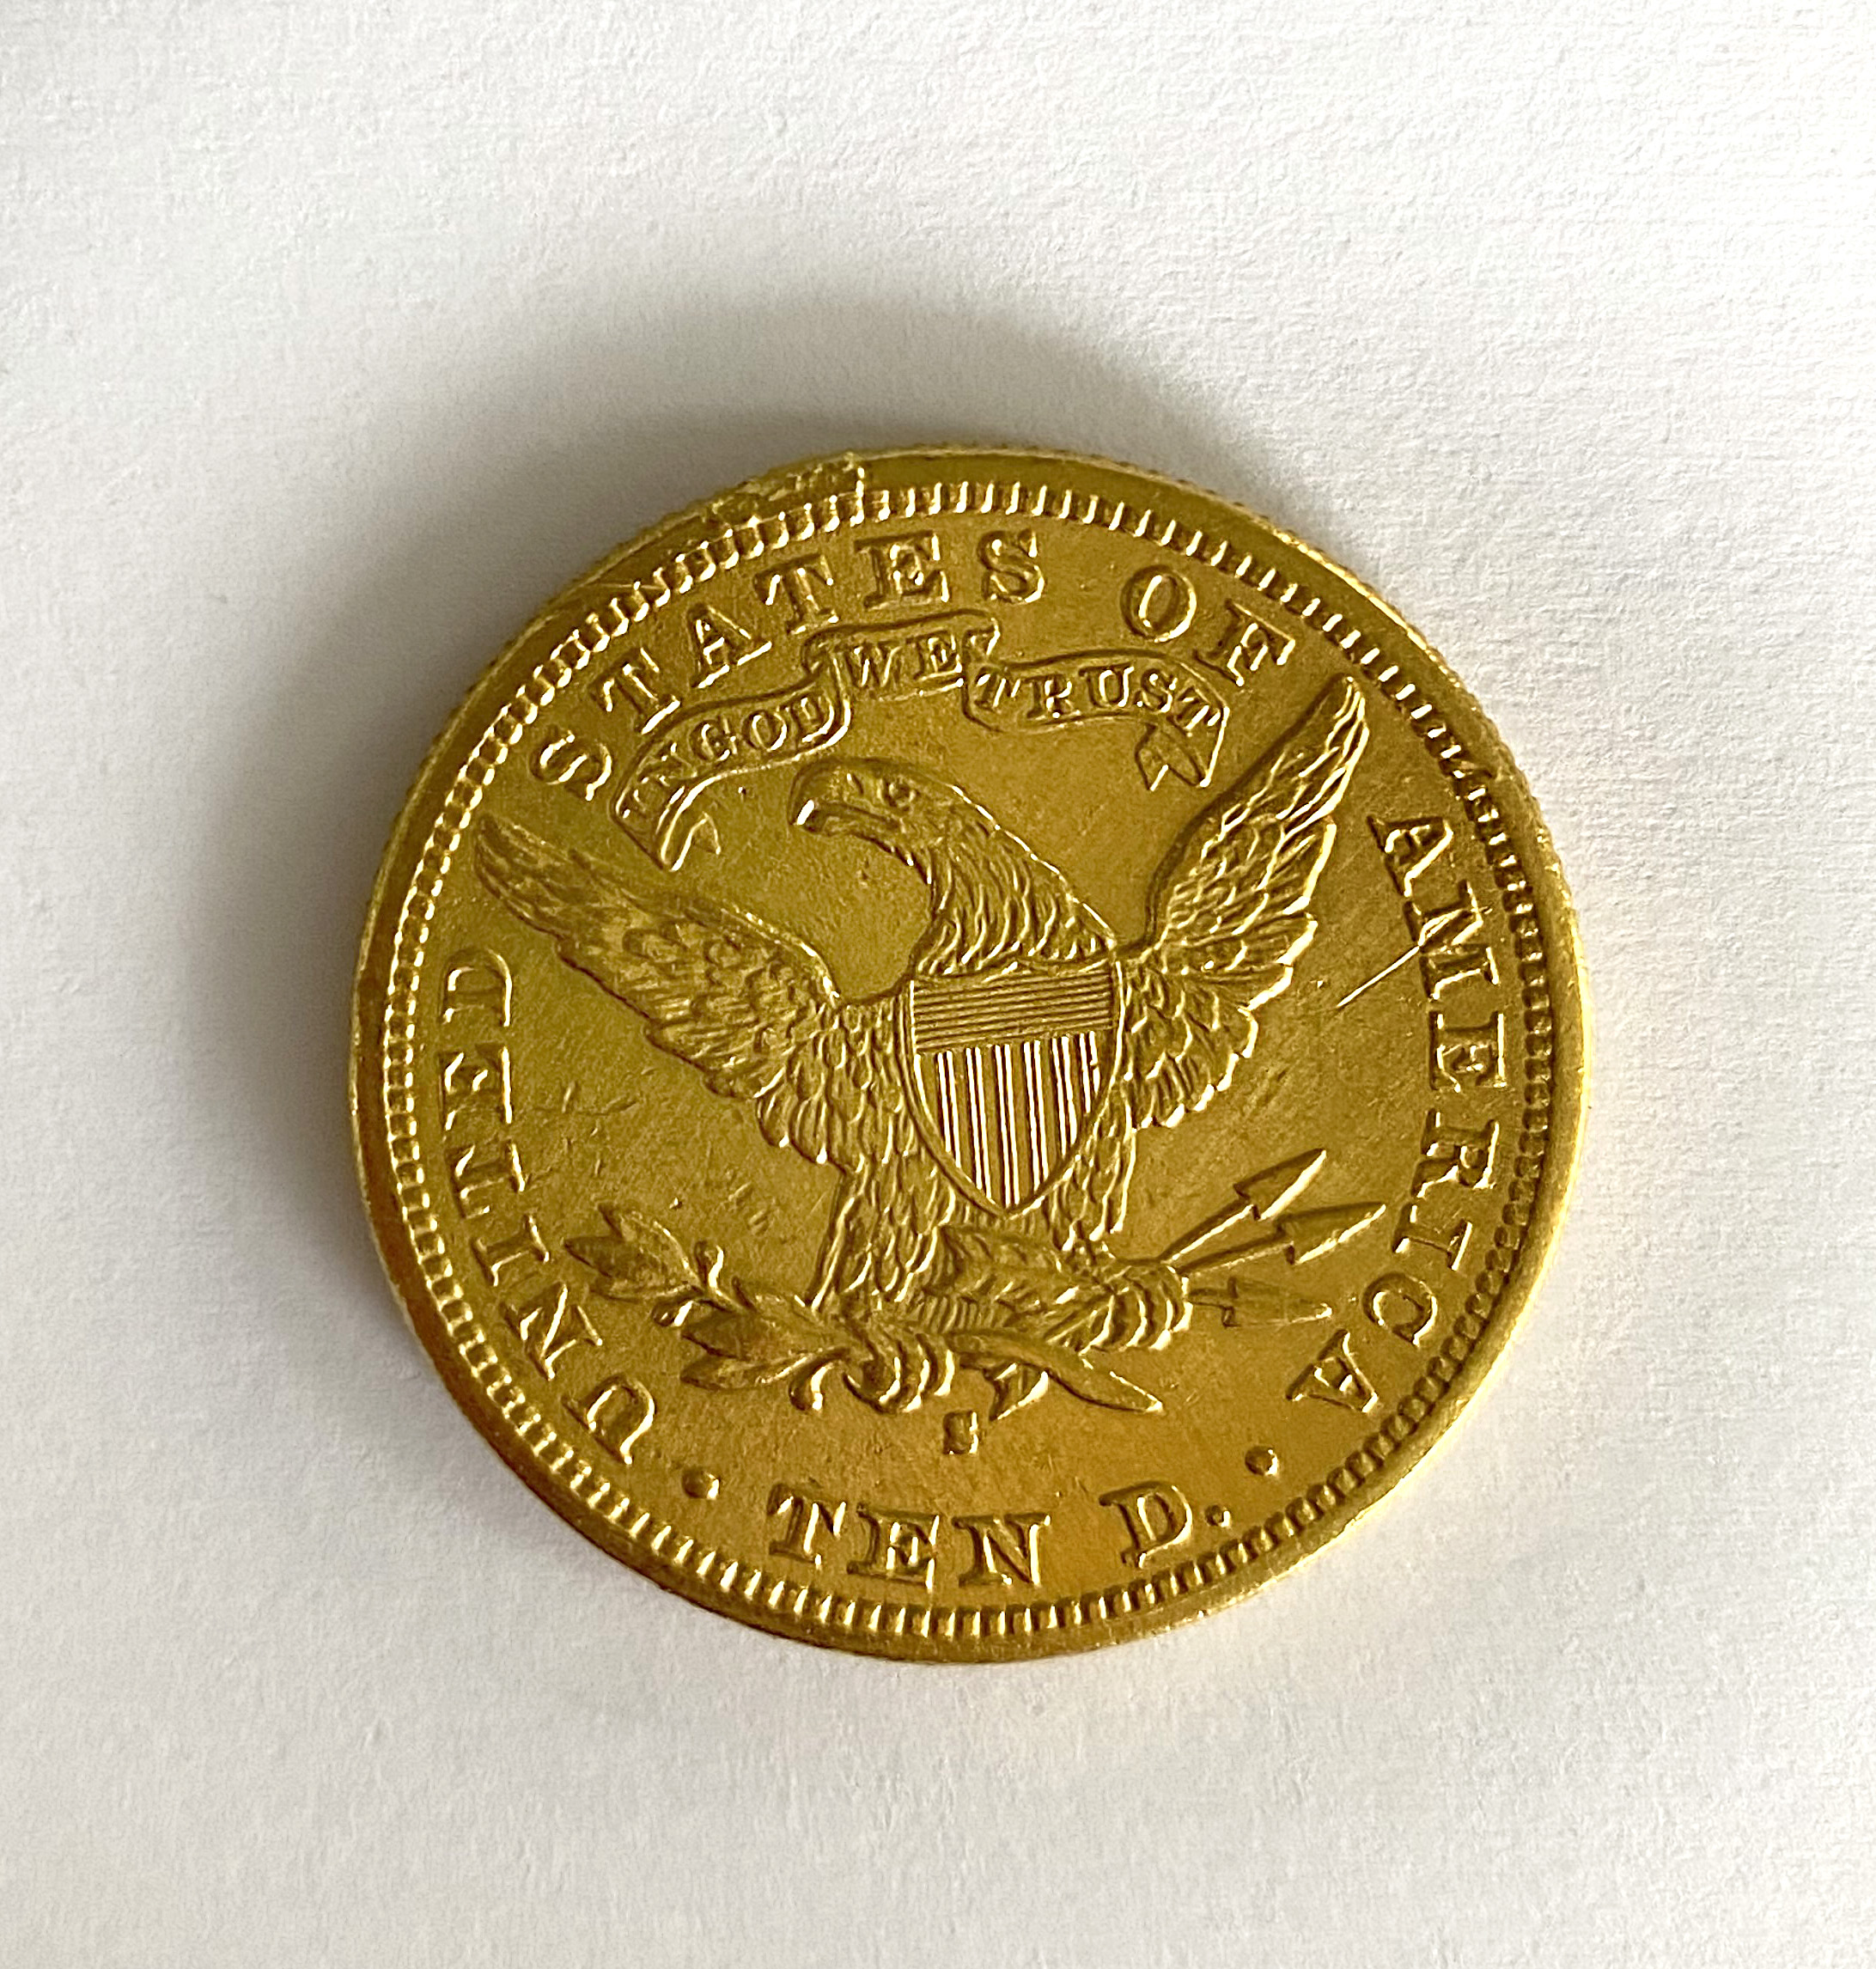 A United States of America $10 coin, - Image 2 of 2